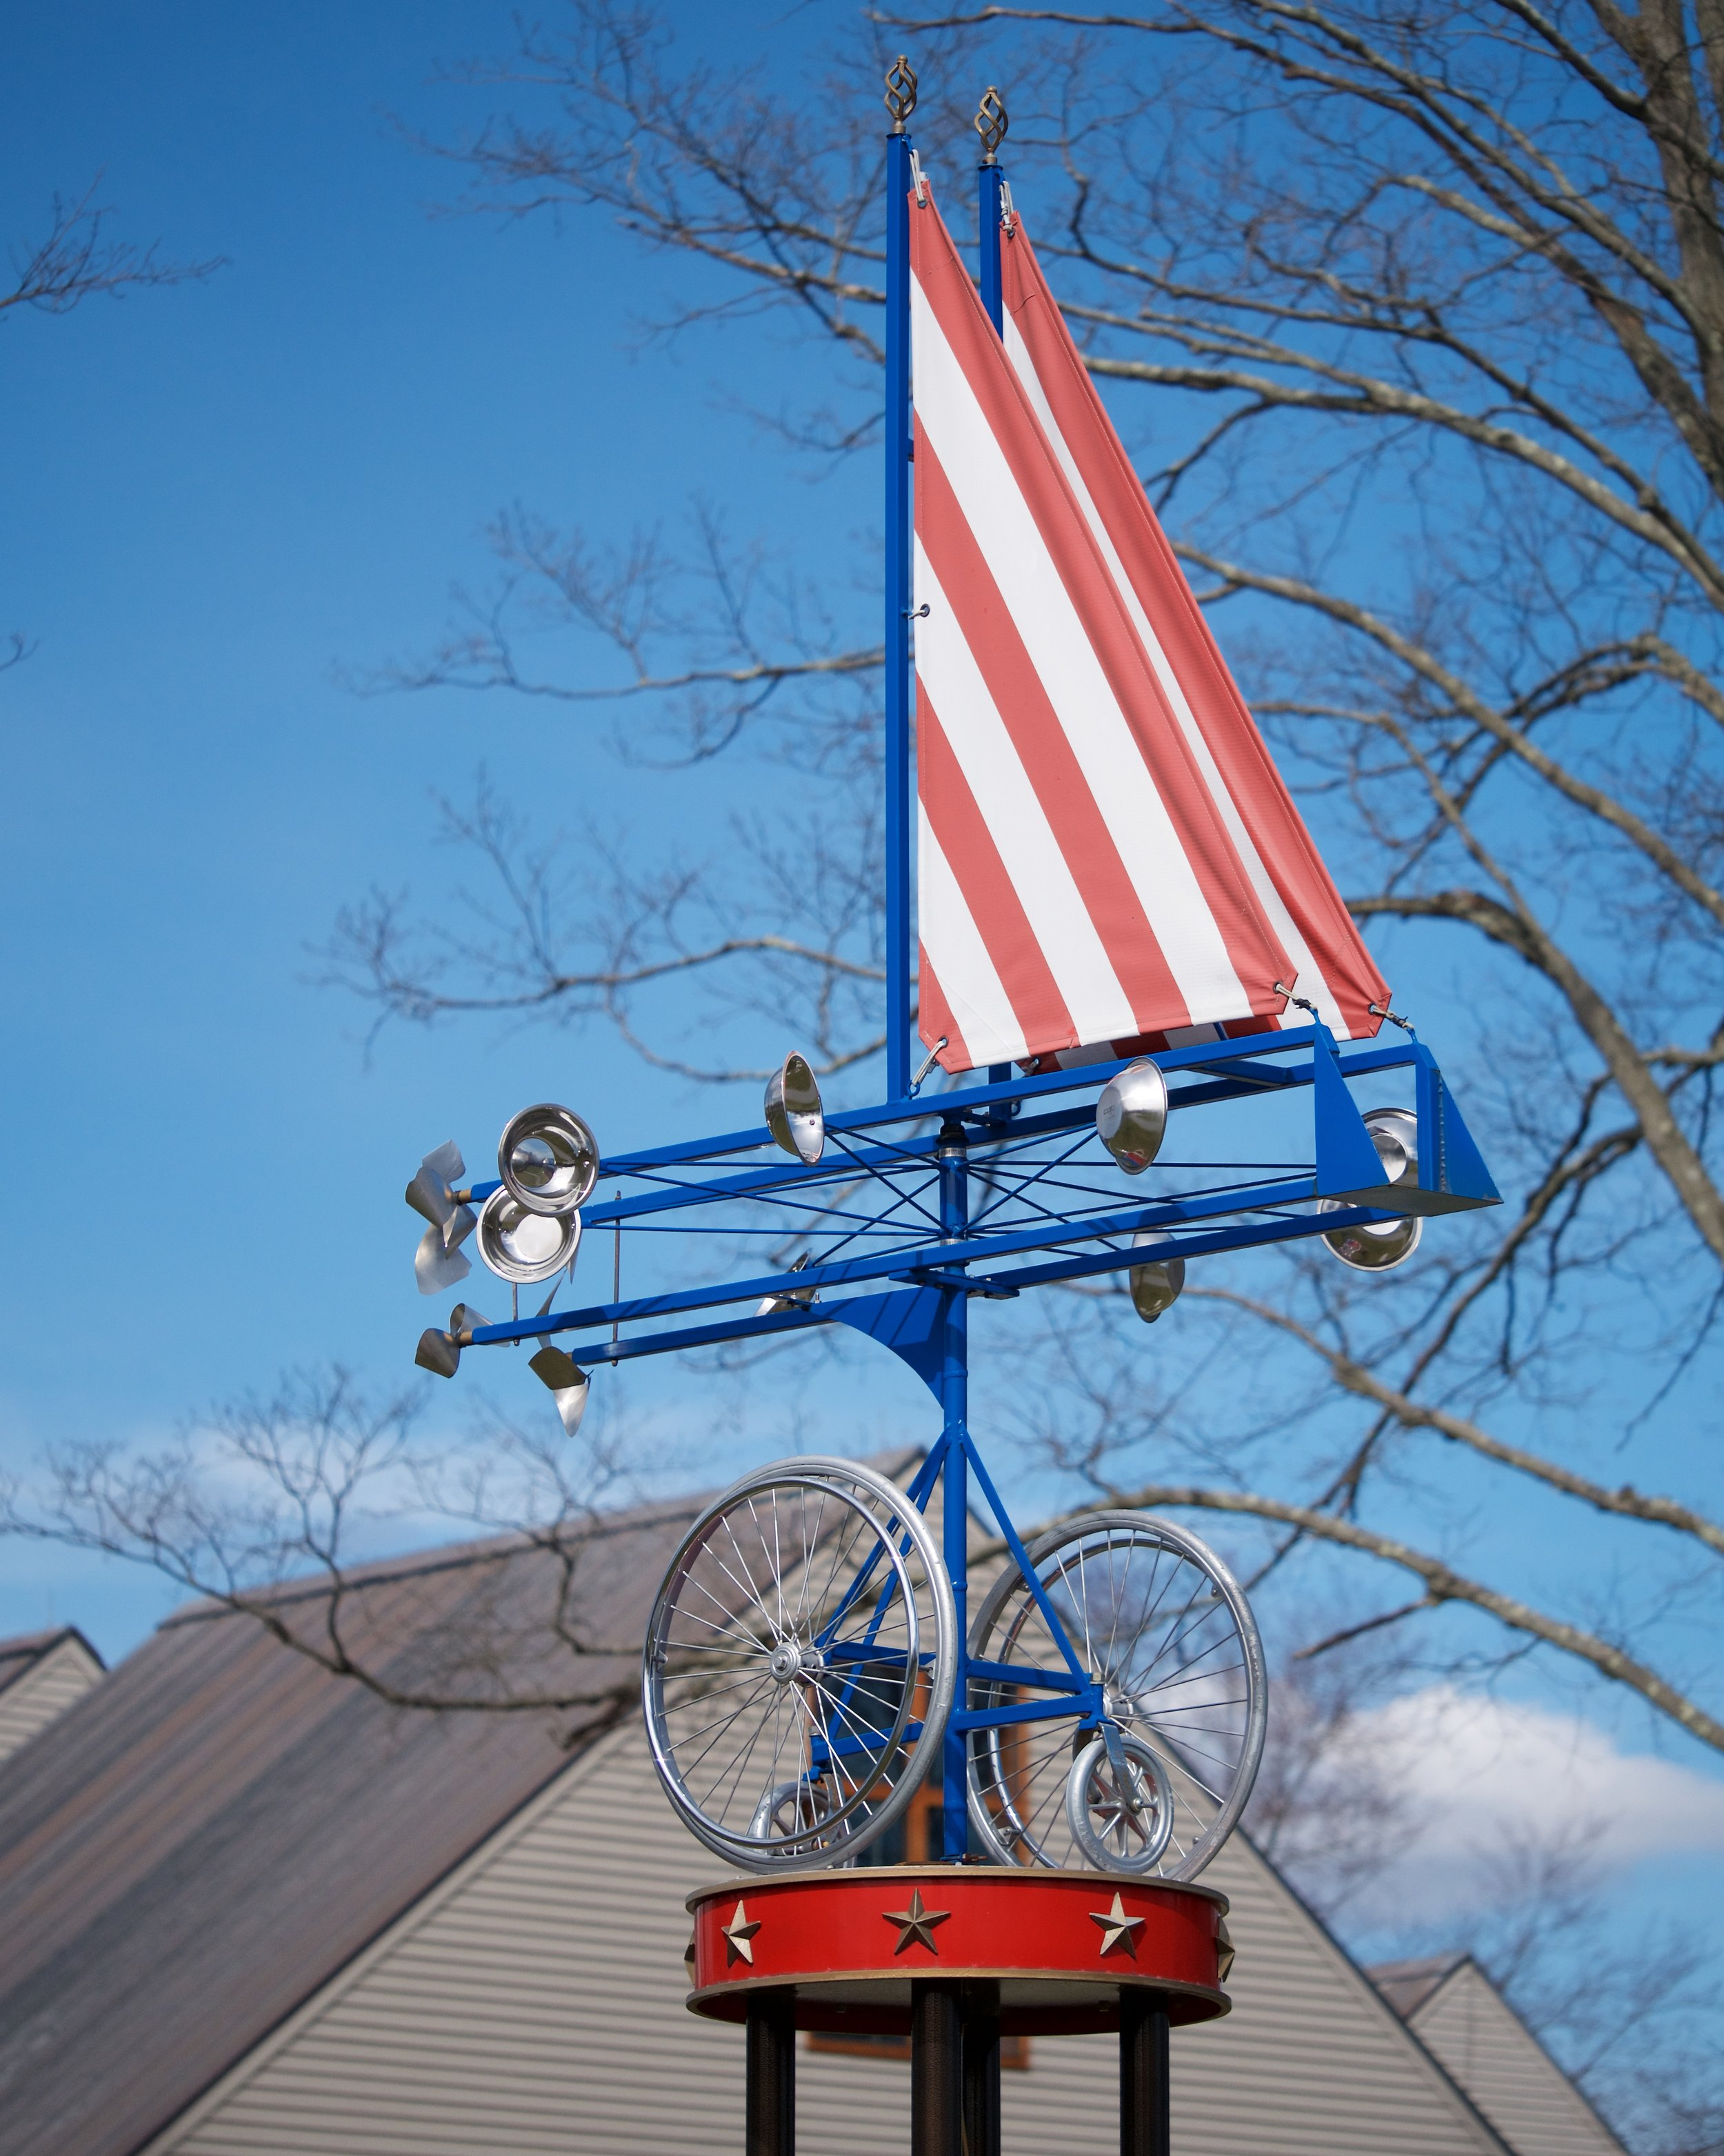 Wheelchair weather vane